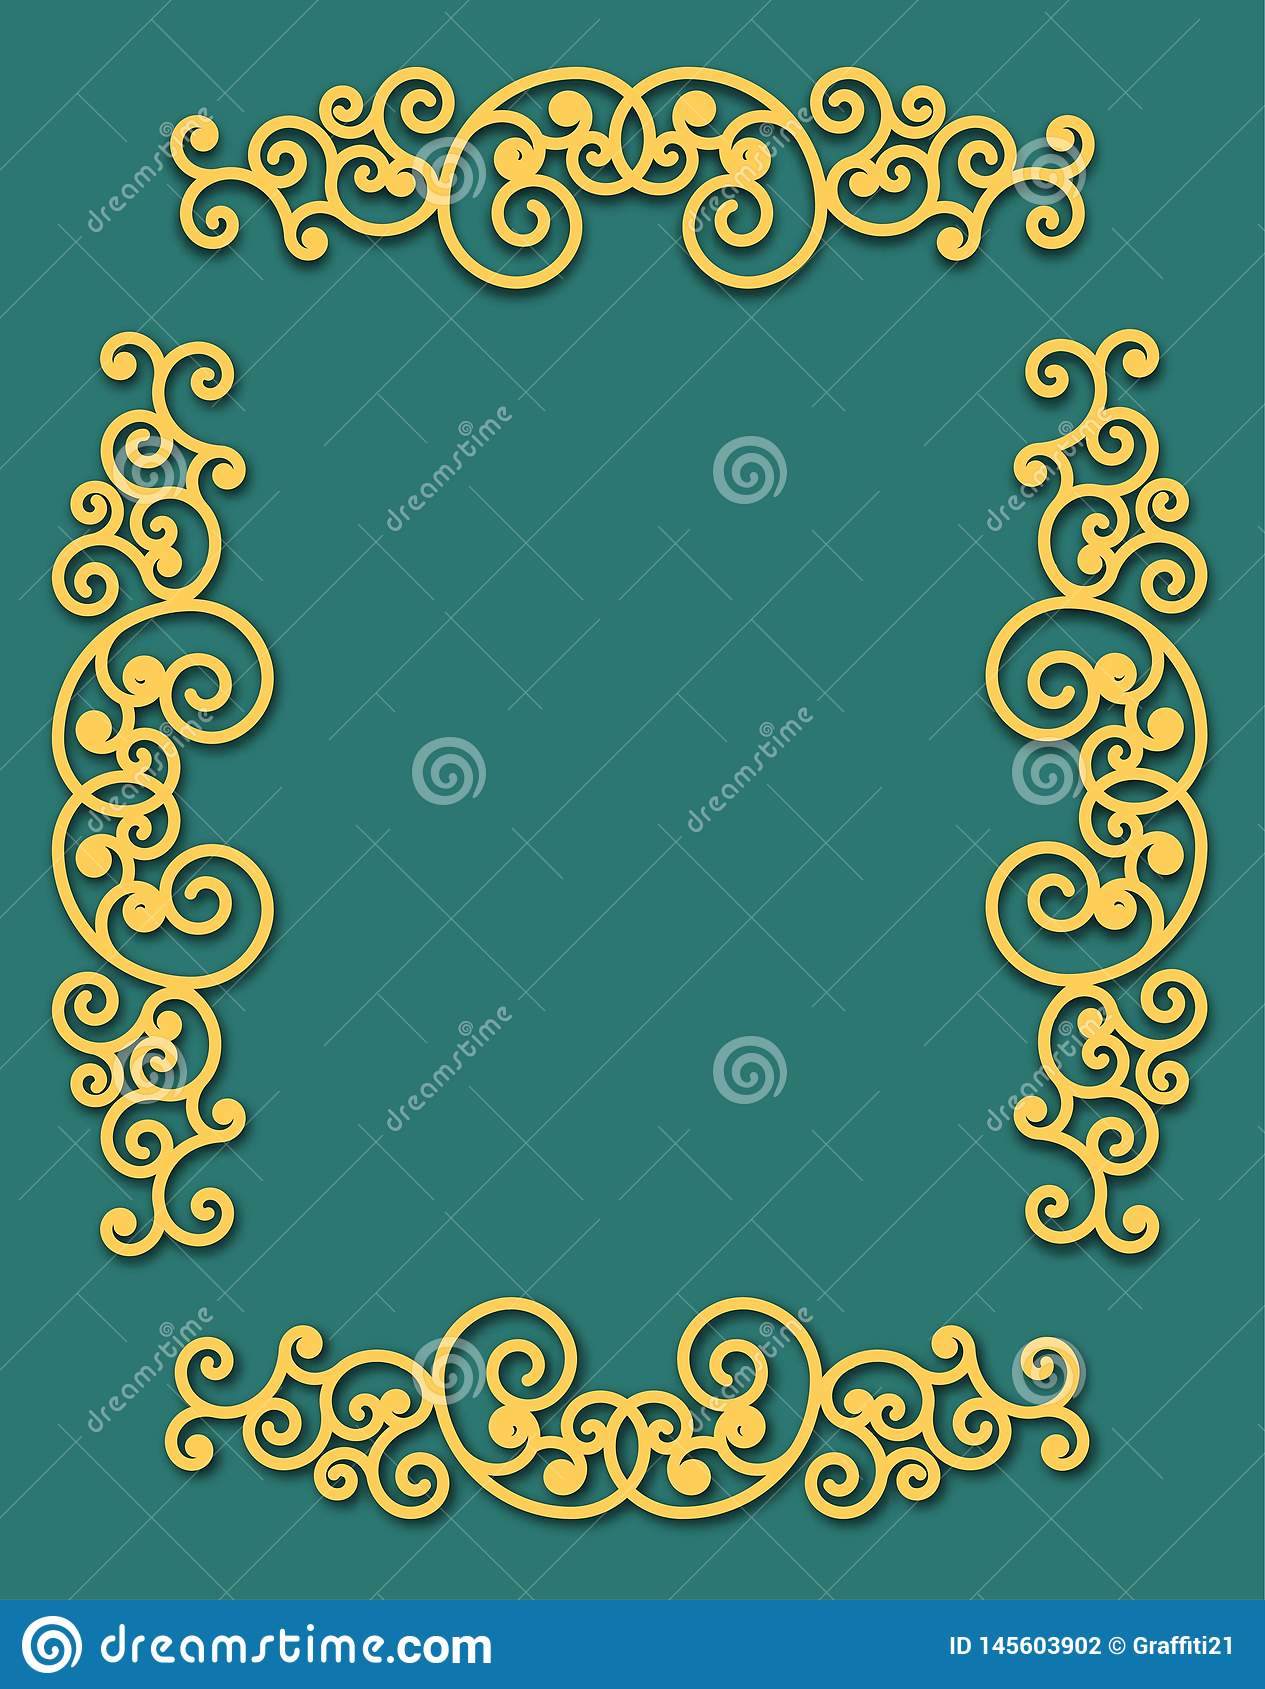 Vintage flourishes ornament frame template vector illustration. Victorian borders for greeting cards, wedding invitations,